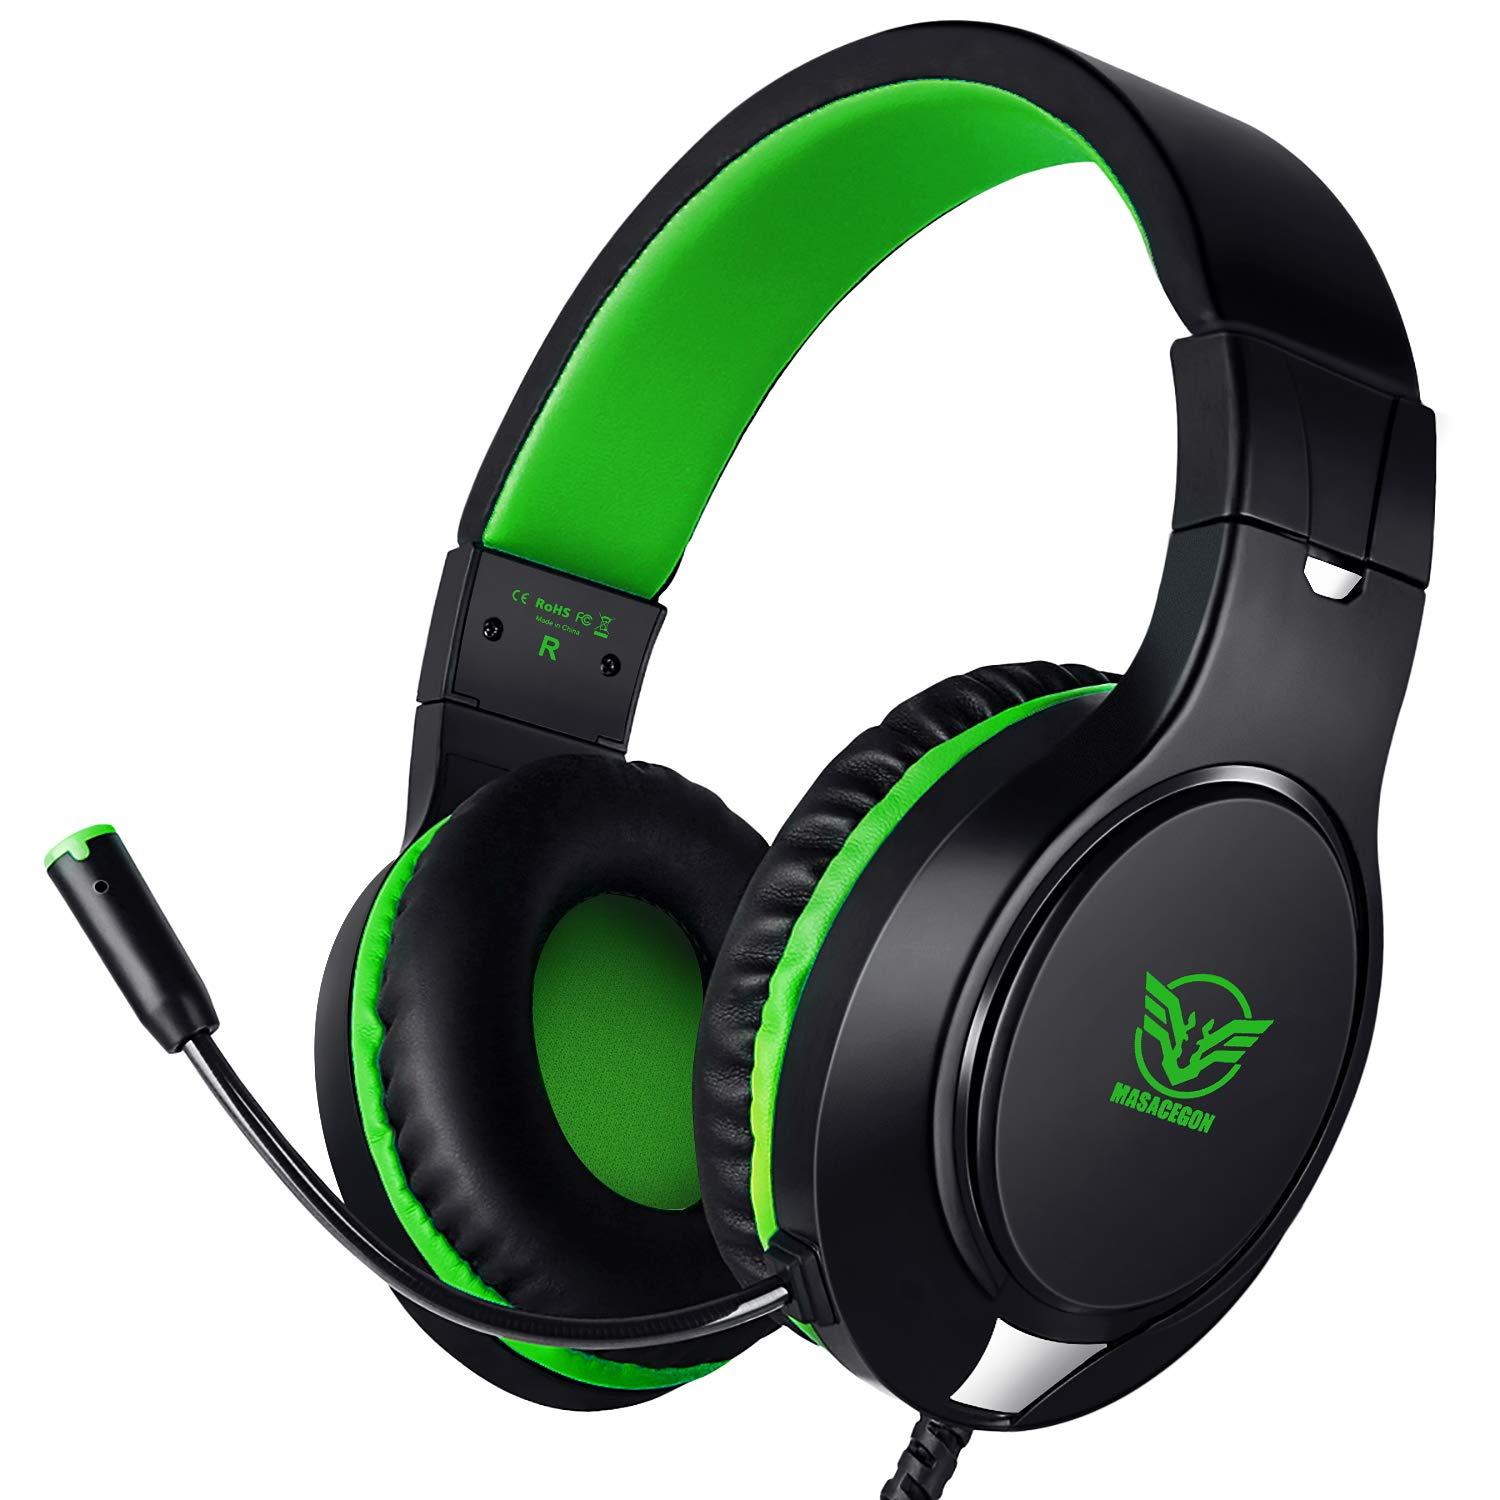 Karvipark H-10 Gaming Headset for Xbox One/PS4/PC/Nintendo Switch|Noise Cancelling,Bass Surround Sound,Over Ear,3.5mm Stereo Wired Headphones with Mic for Clear Chat (Green) by Karvipark